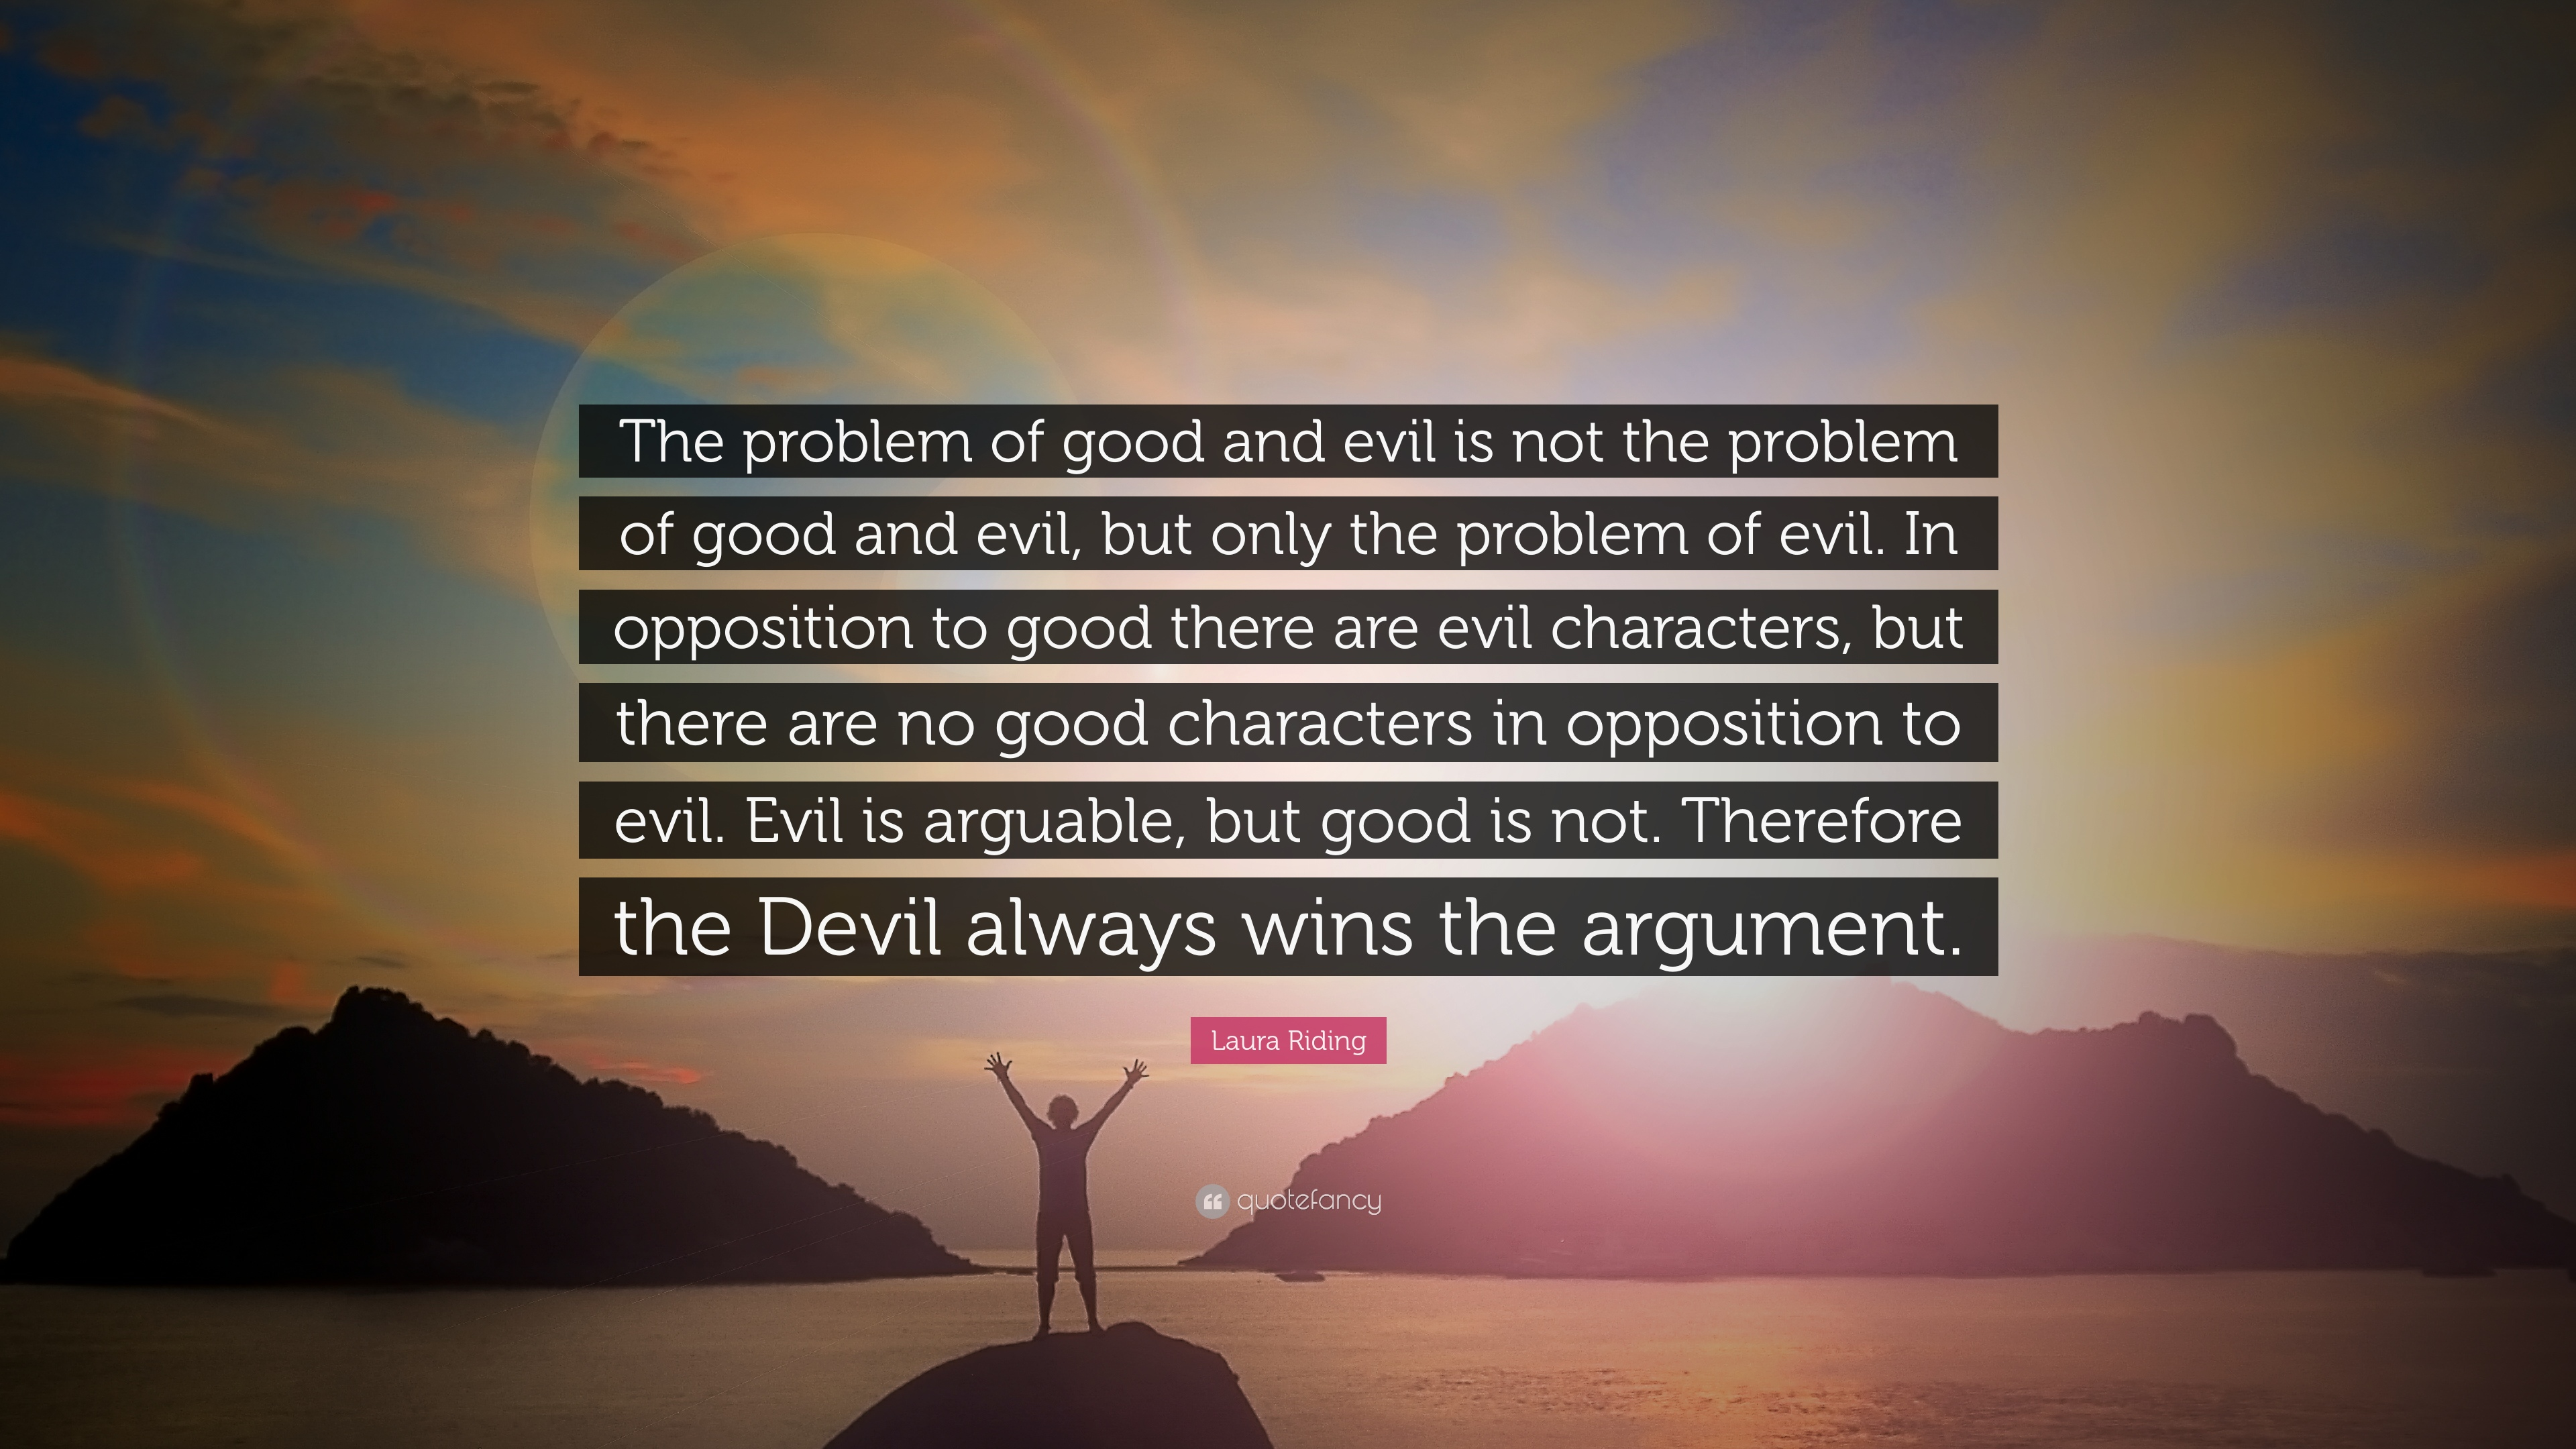 Problem of good and evil